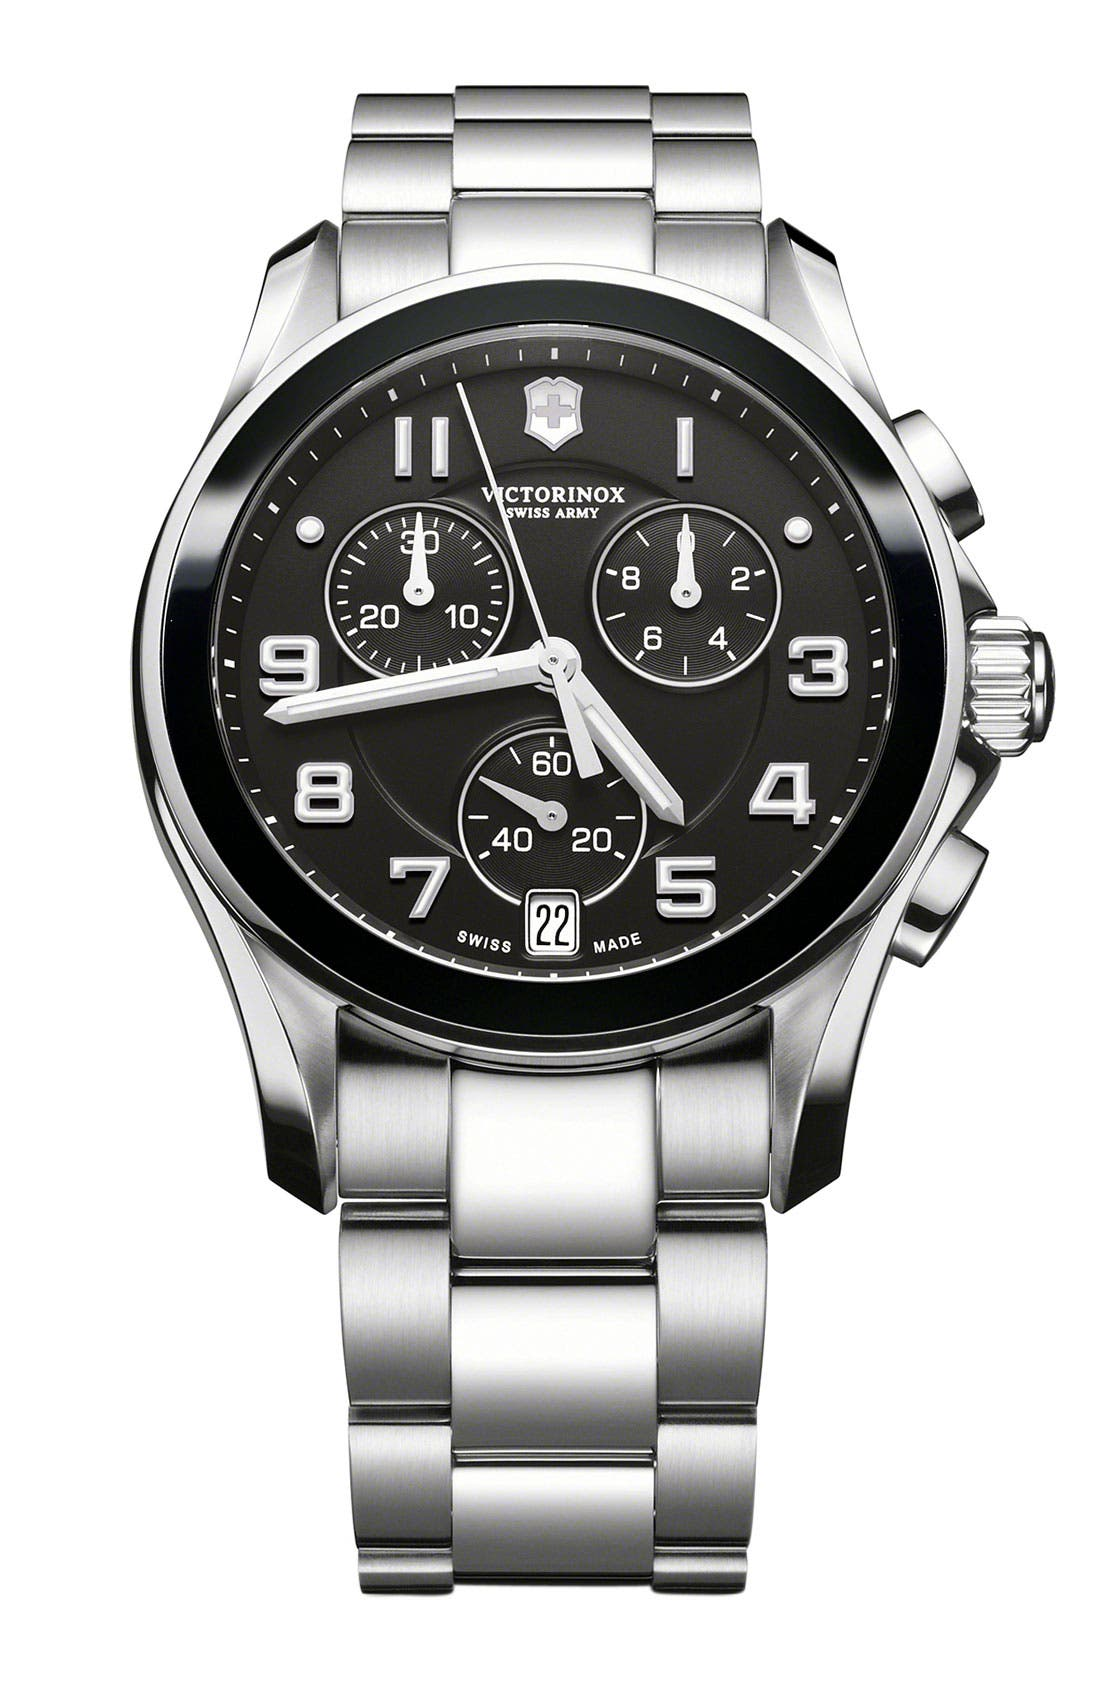 Alternate Image 1 Selected - Victorinox Swiss Army® 'Chrono Classic' Watch with Ceramic Bezel